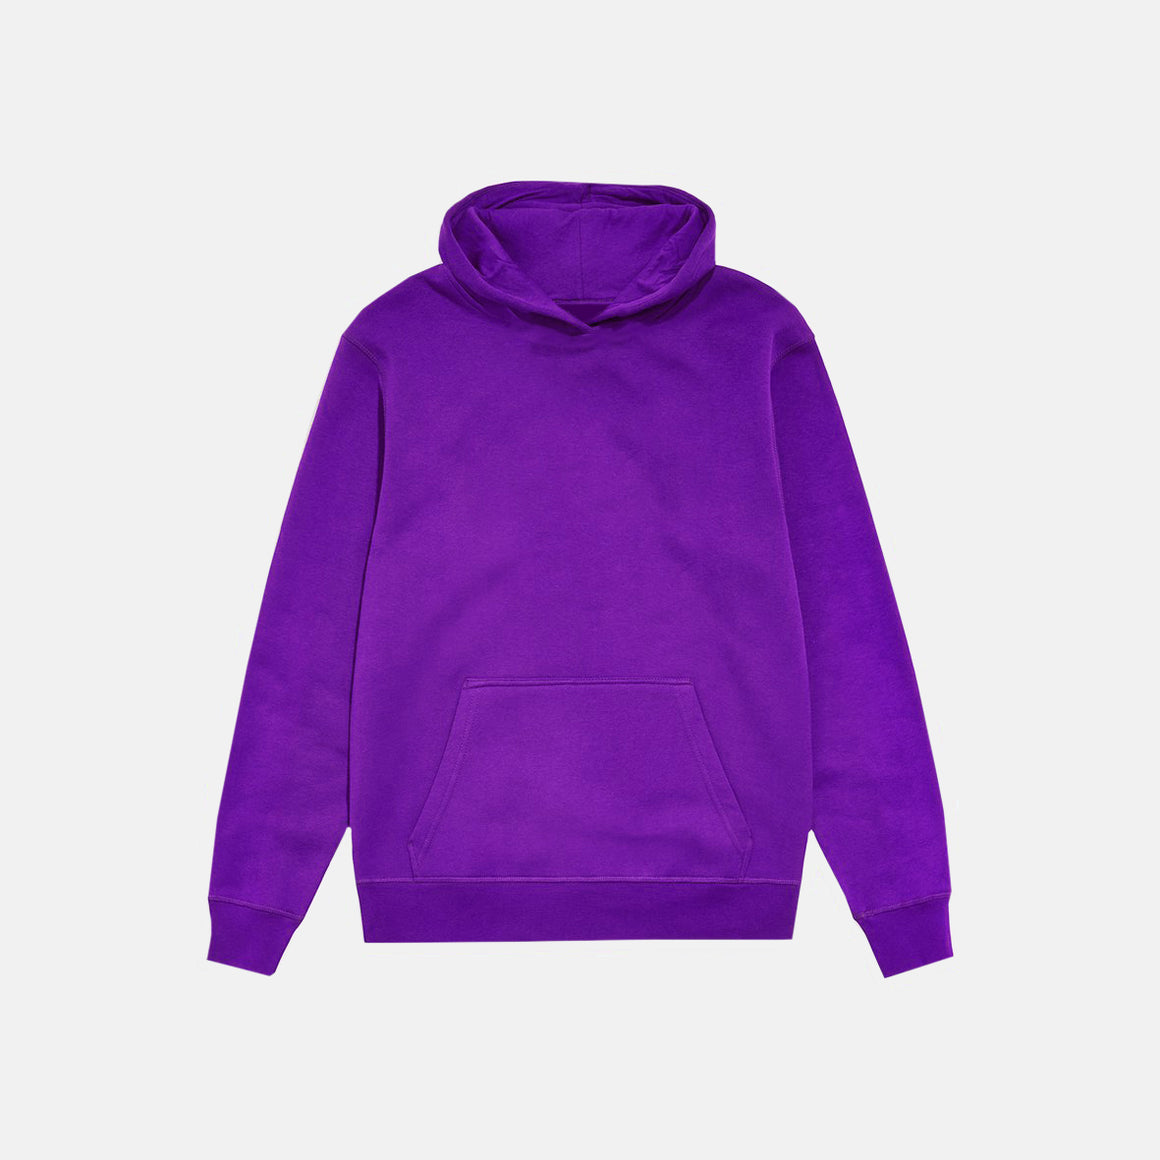 UNBRANDED ESSENTIAL PULLOVER HOODY | BRIGHT PURPLE